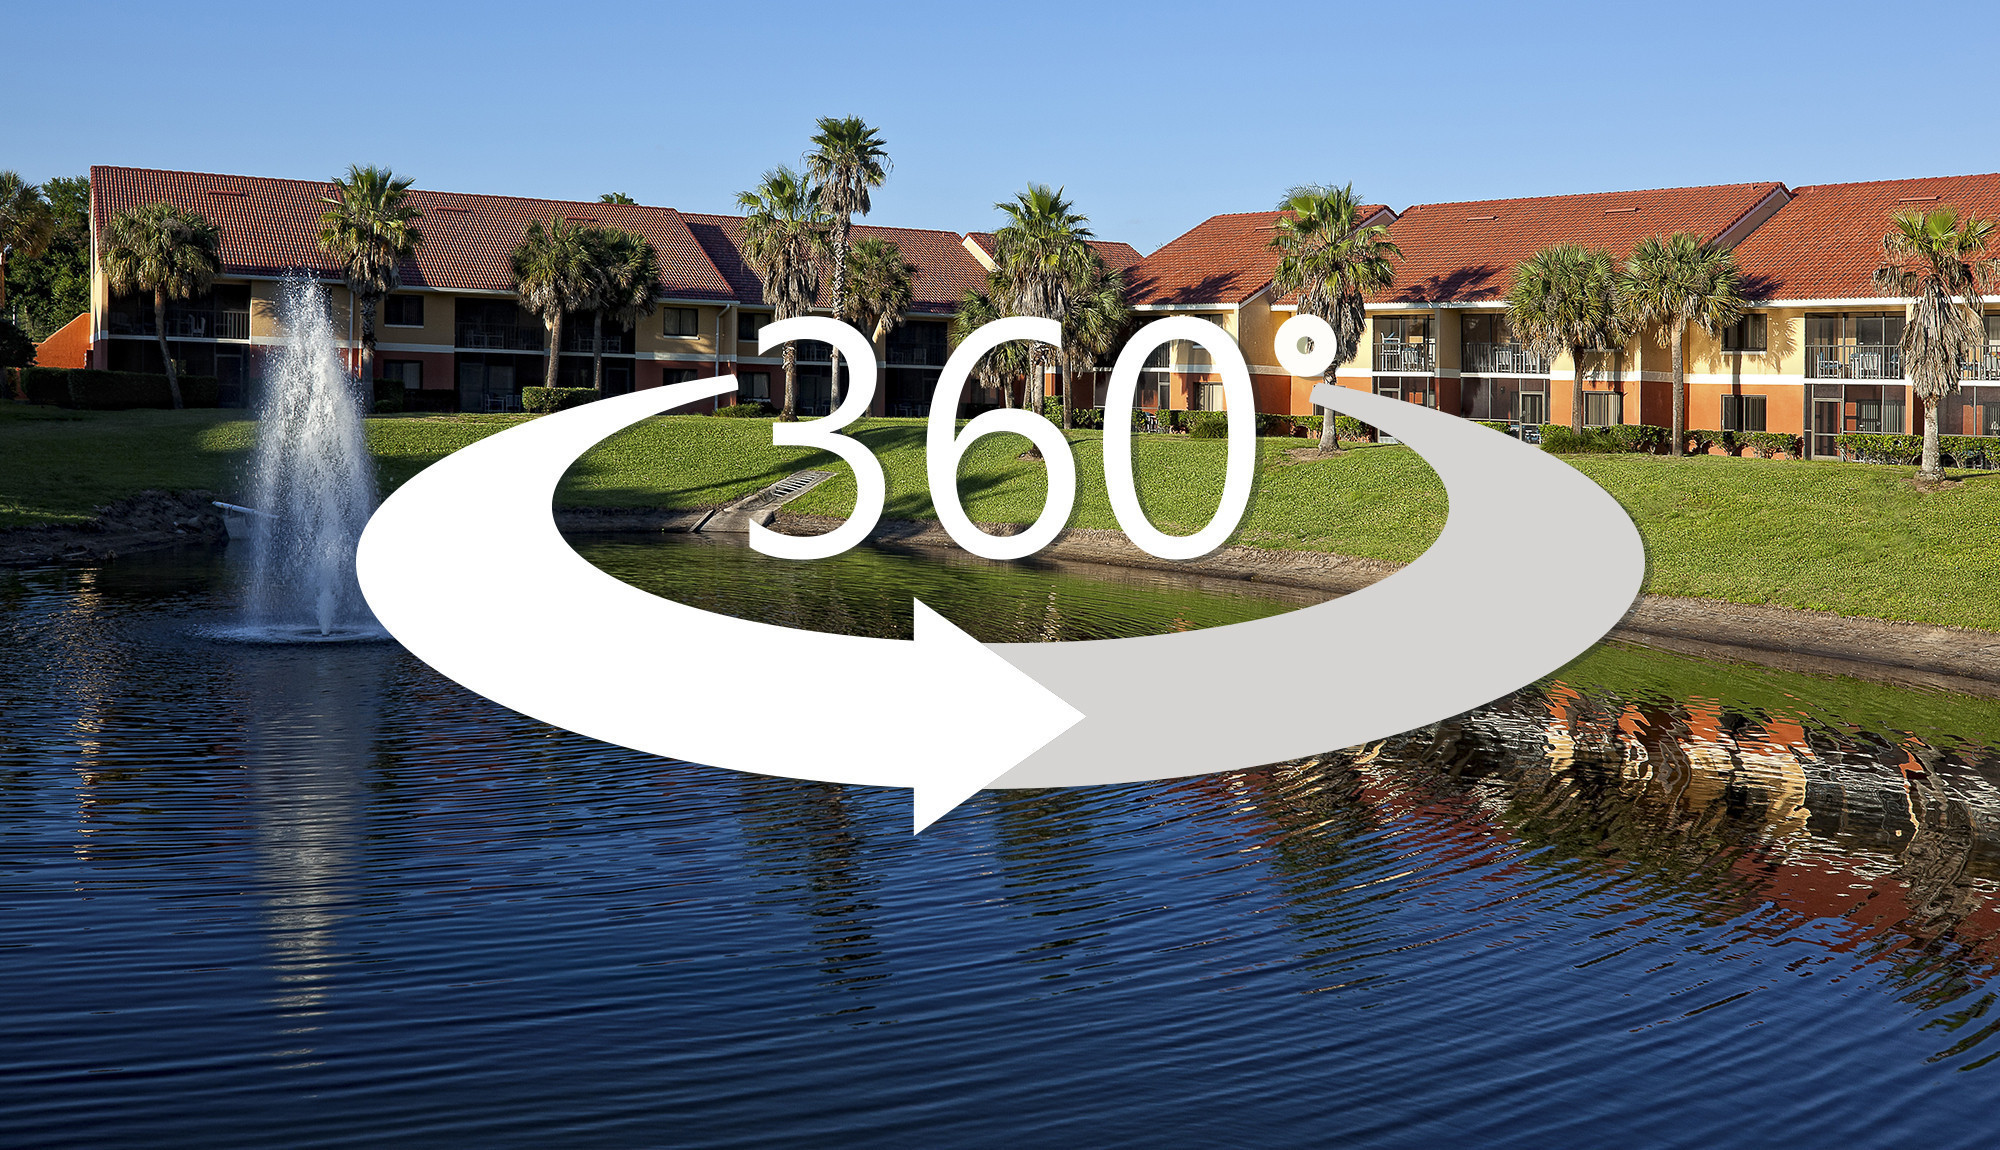 360 Degree Virtual Tour Image | Westgate Vacation Villas Resort & Spa | Orlando, FL | Westgate Resorts